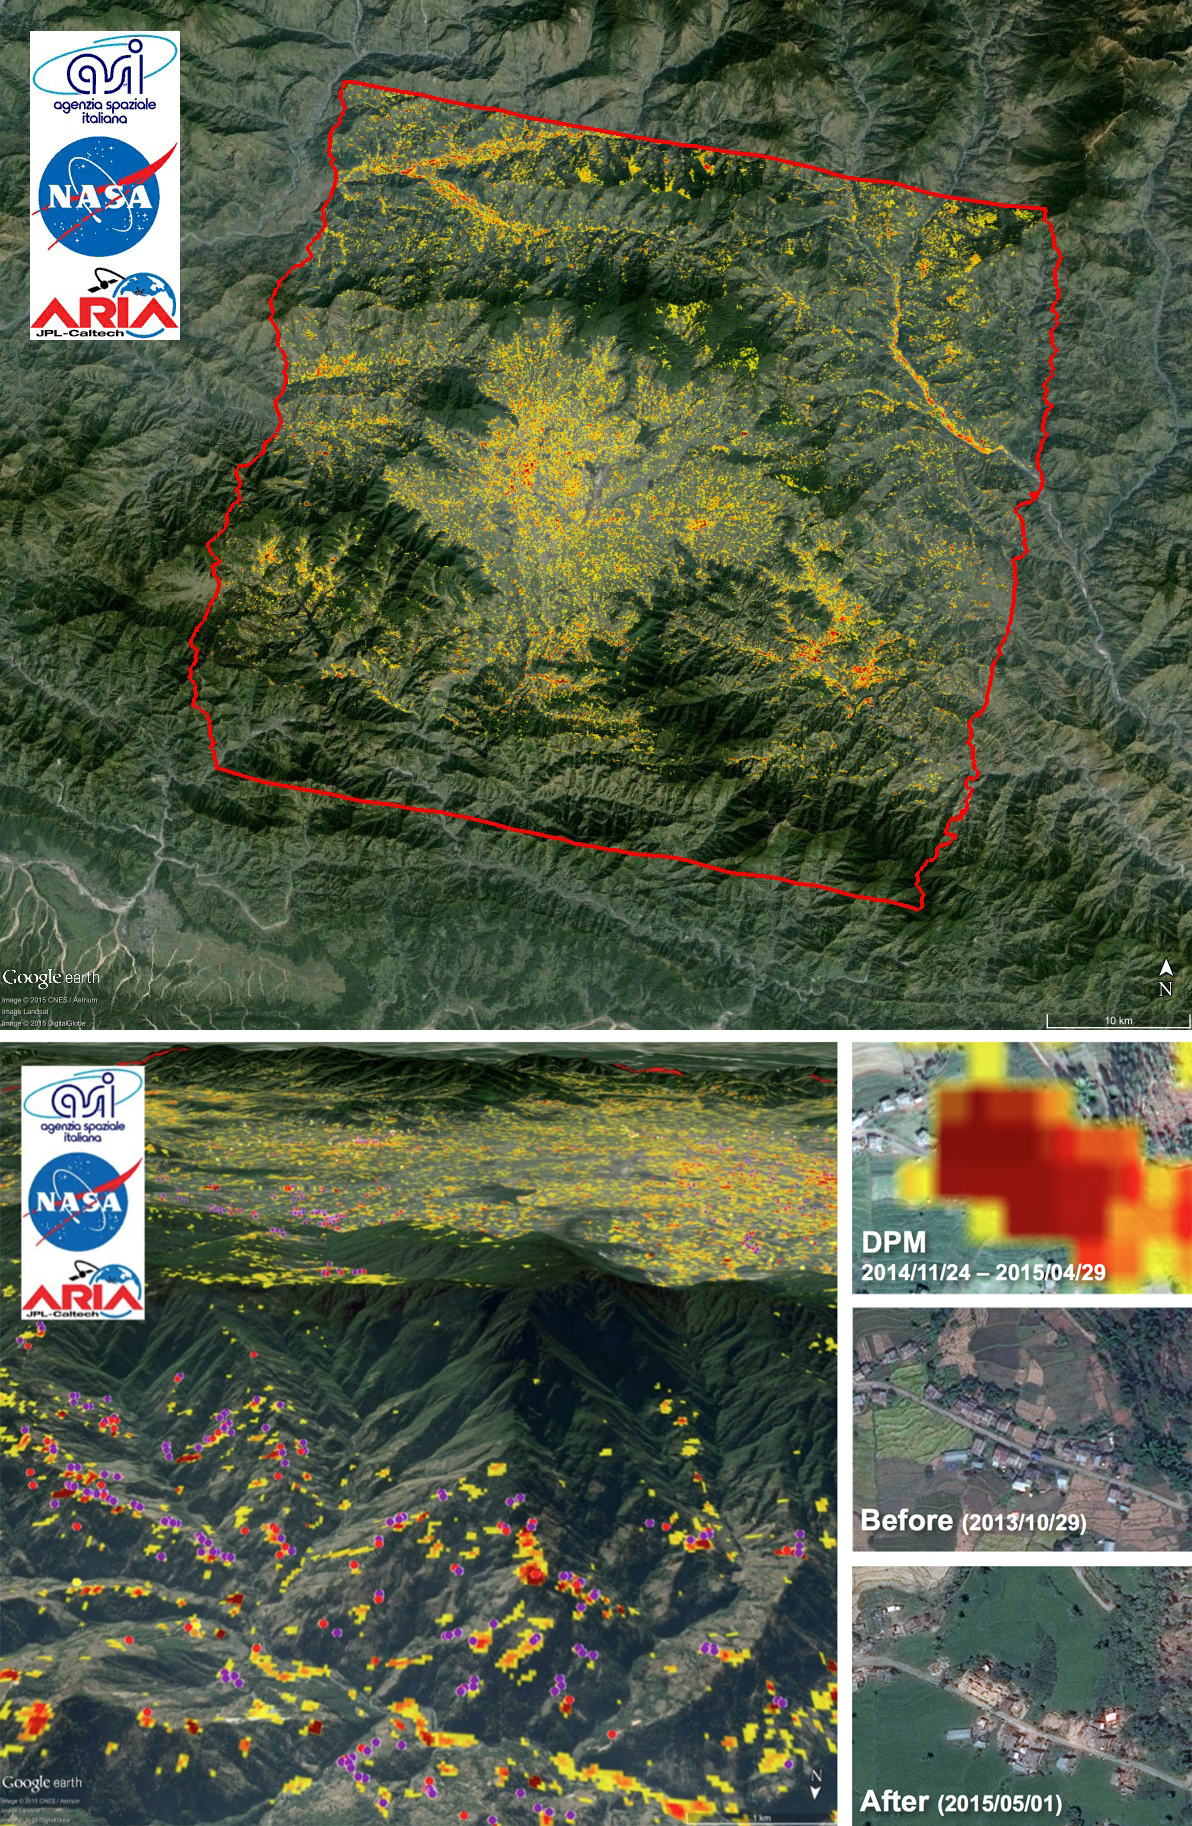 Nasa Damage Map To Assist With 2015 Nepal Quake Disaster